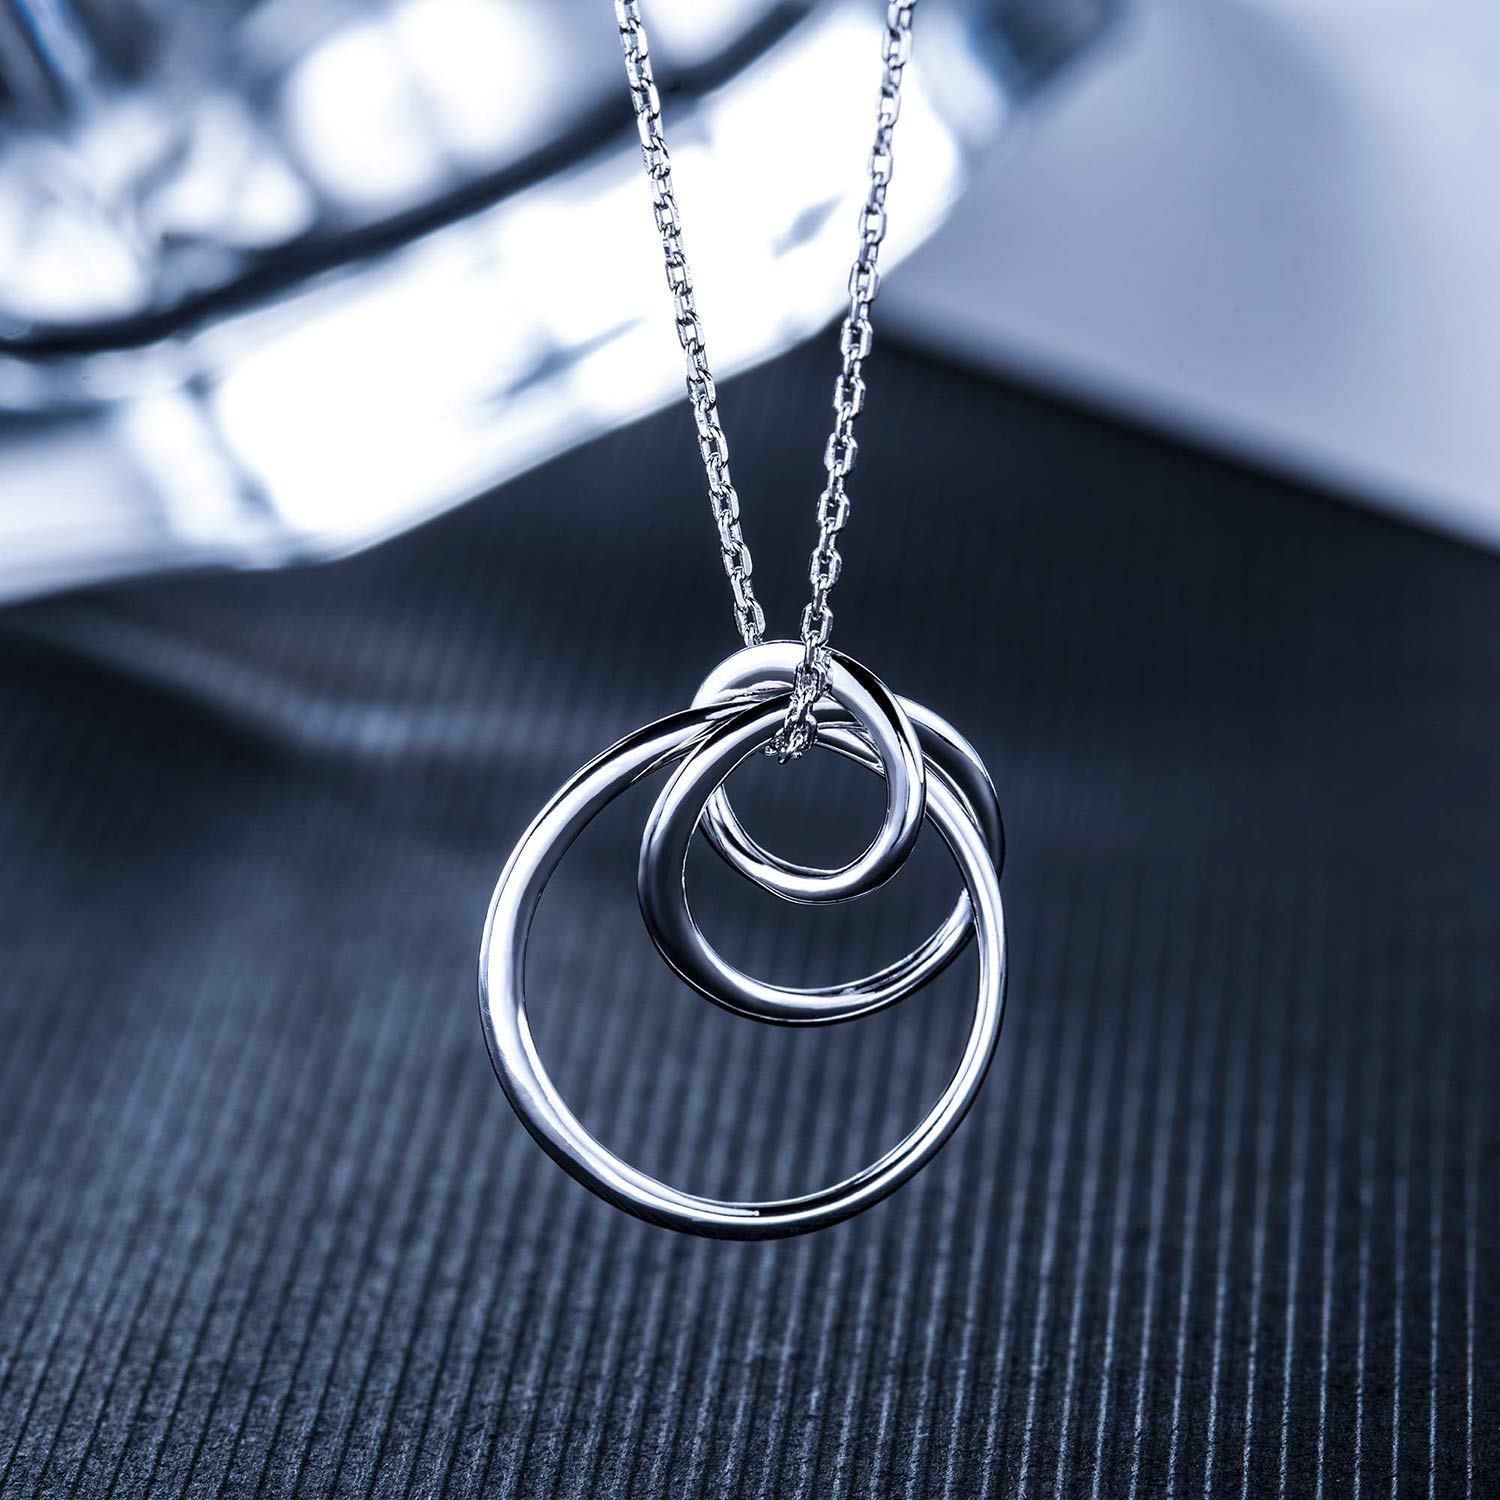 81c0965fe Amazon.com: Chiclove Sterling Silver 3 Circles Necklace - Generation  Necklace - Grandmother Mother Daughter Necklaces - Family Necklace -  Grandma Gift ...